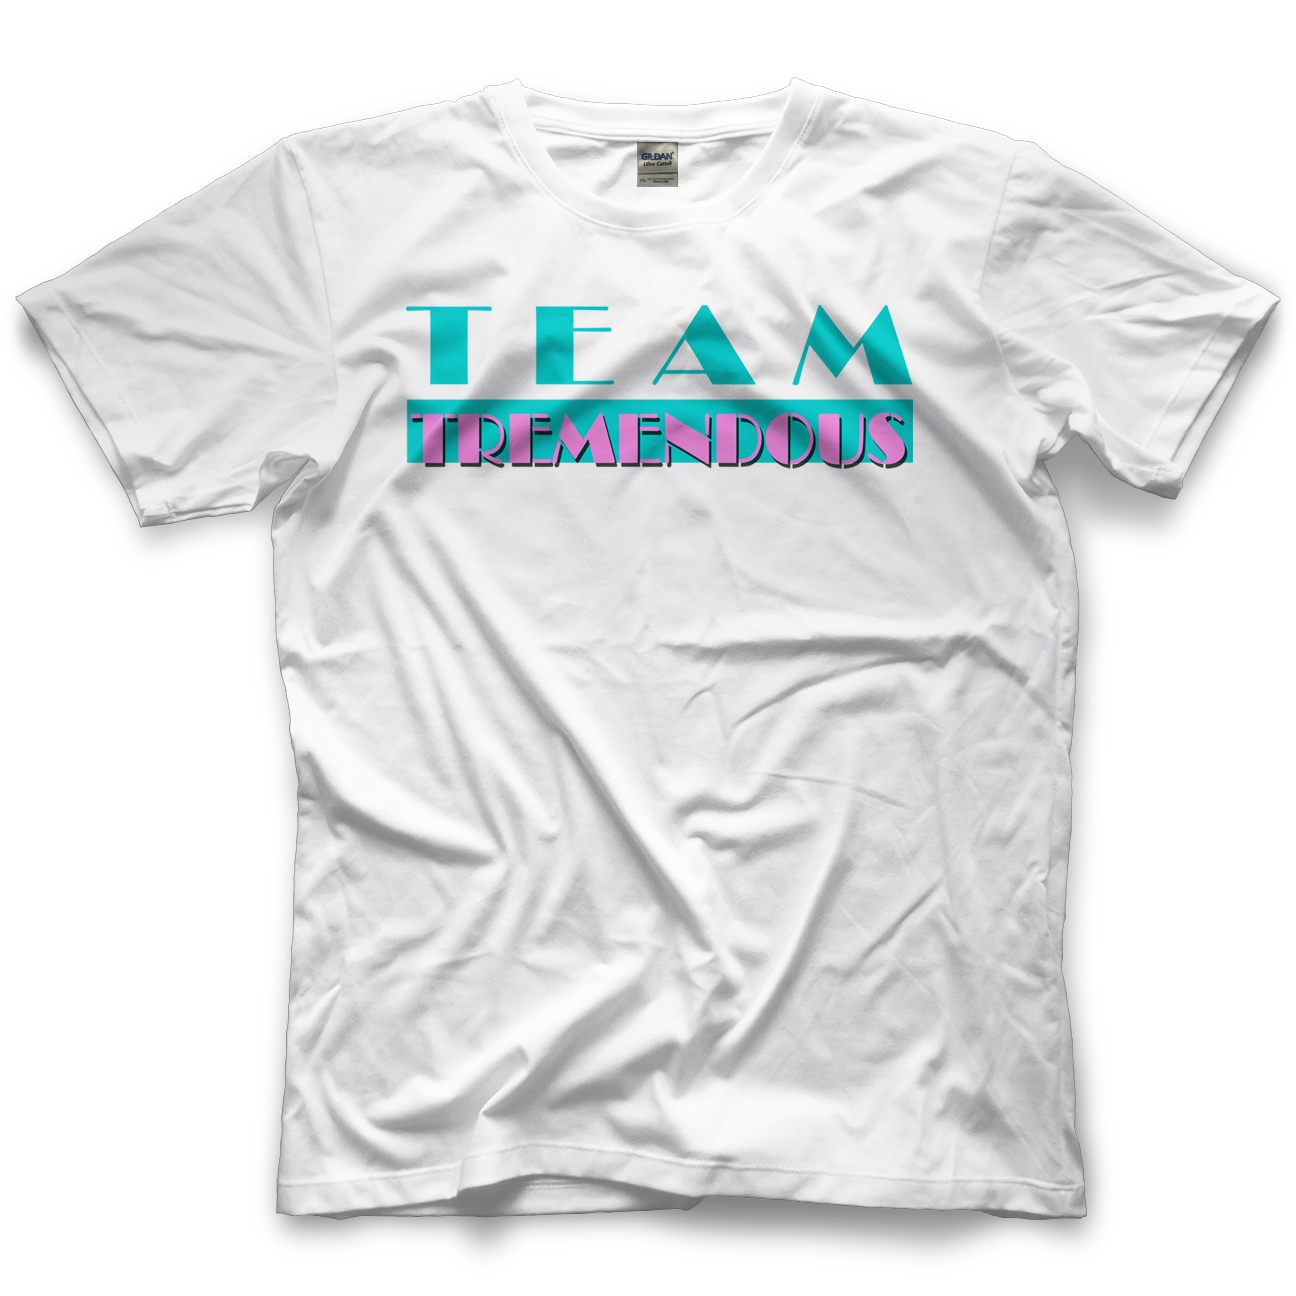 Team Tremendous Tremendous Vice T-shirt